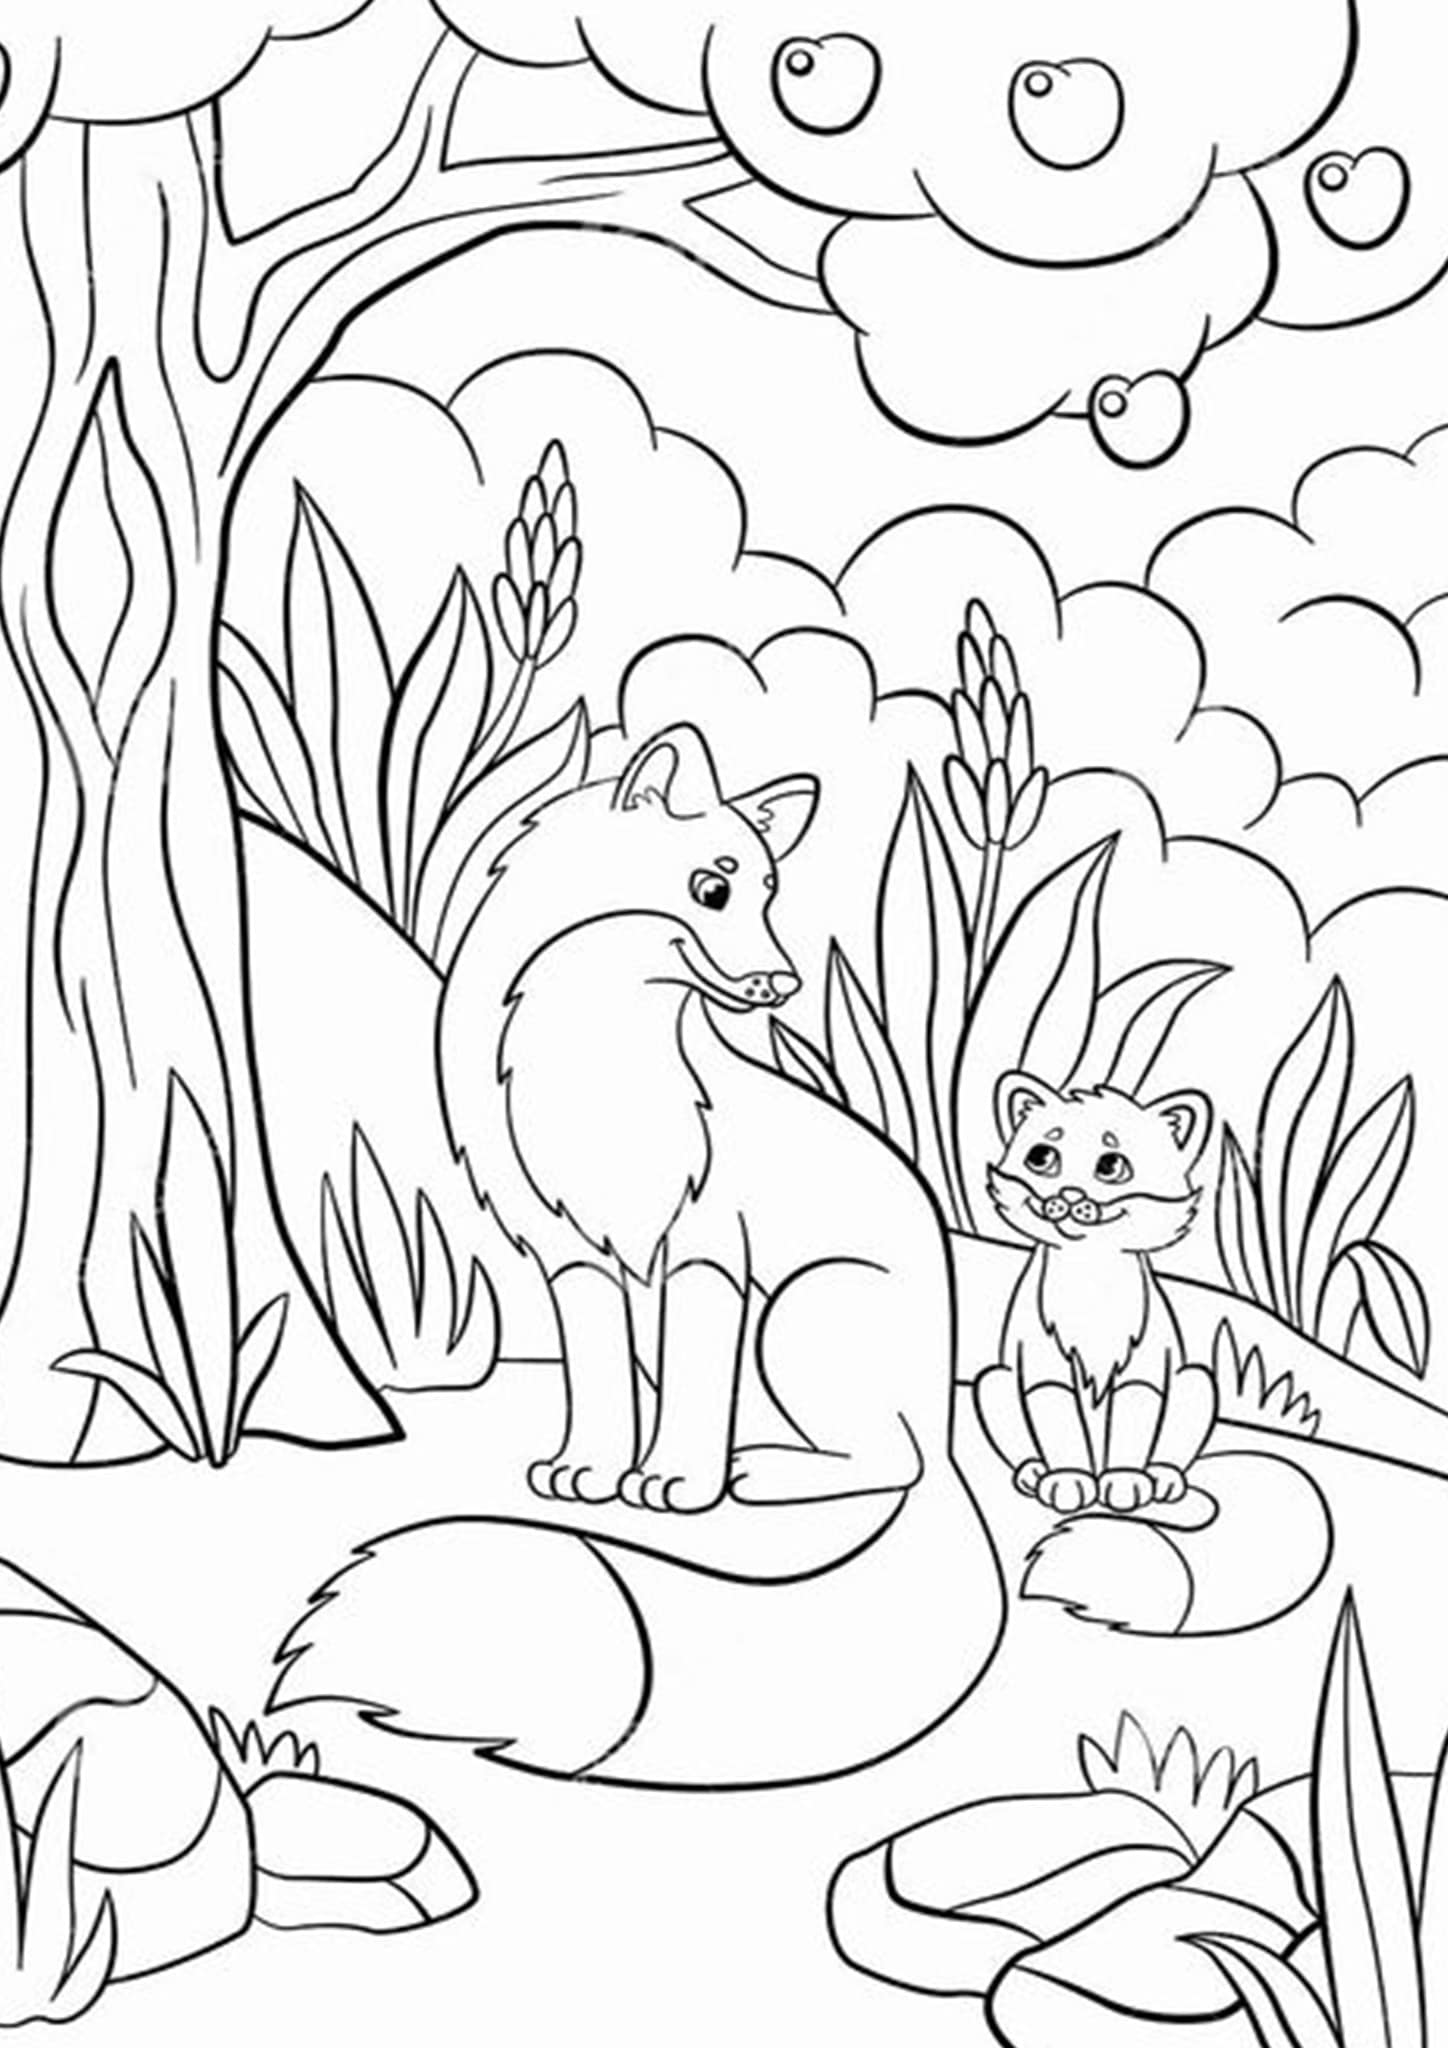 foxes coloring pages fox coloring pages for kids various poses k5 worksheets foxes pages coloring